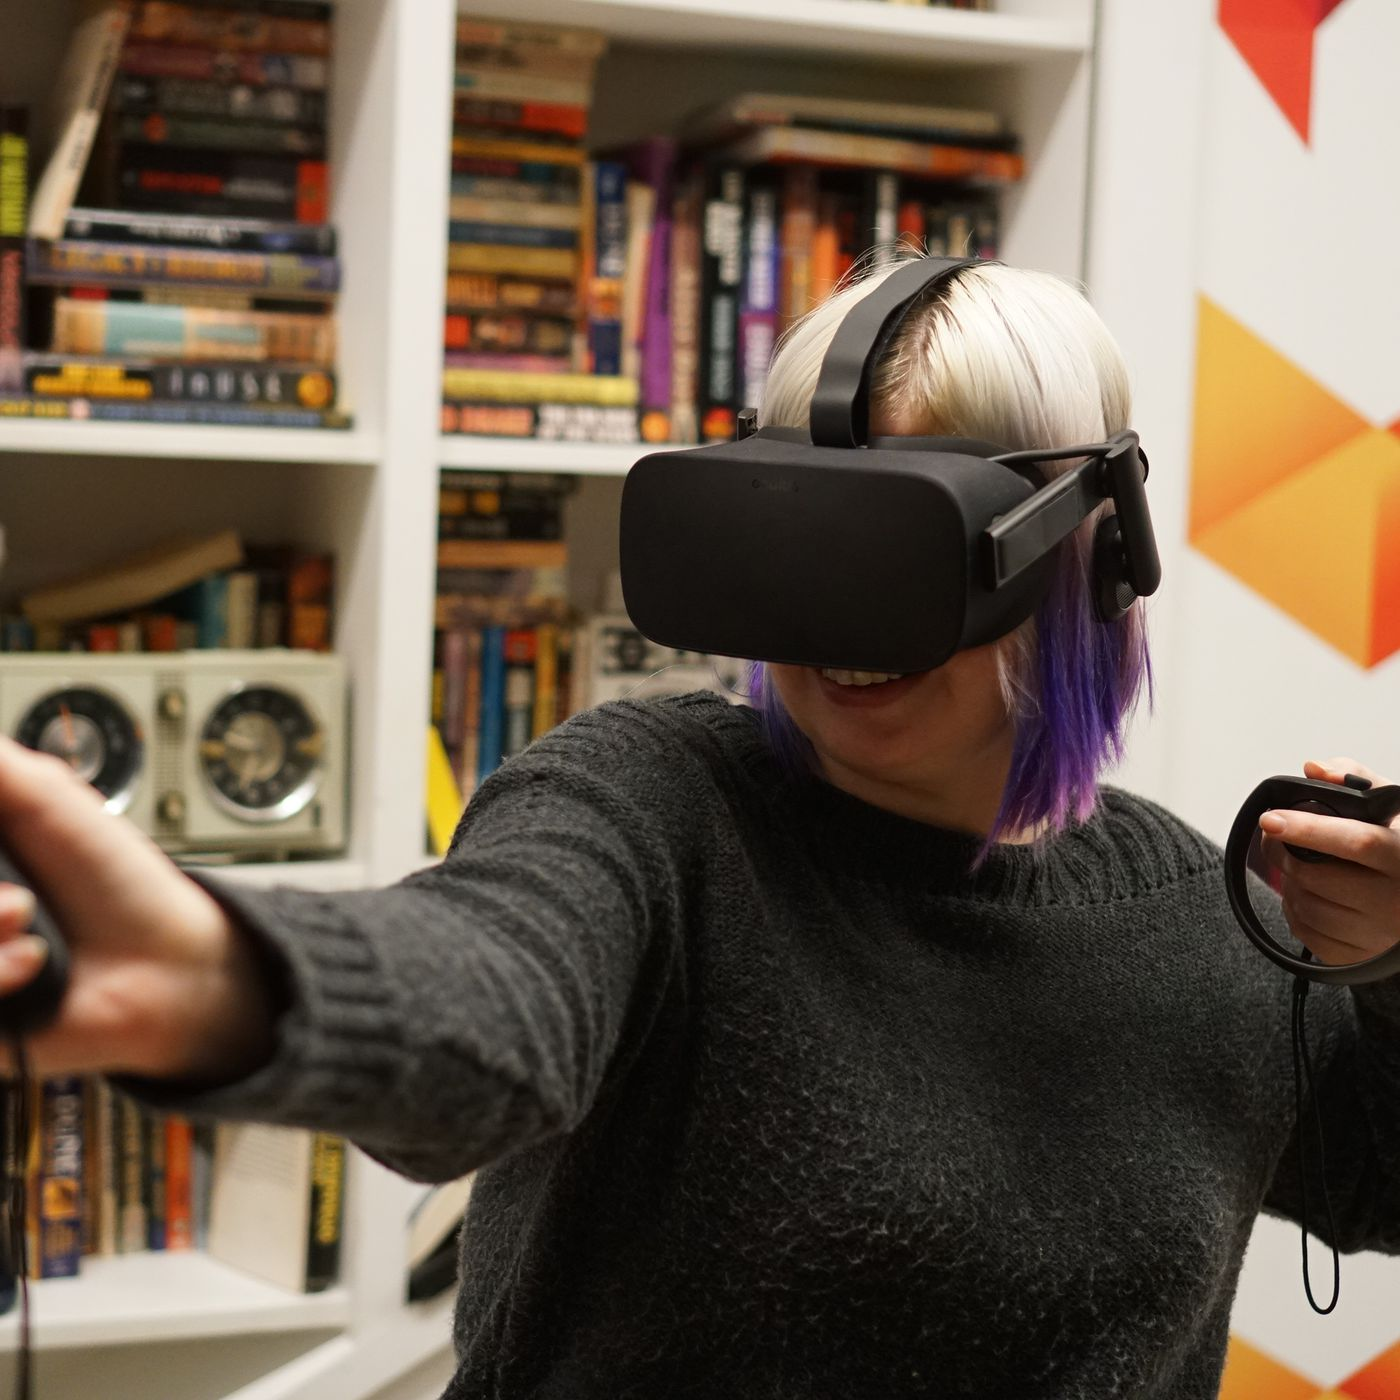 The Rift is a Vive: a complete guide to the new VR ecosystem